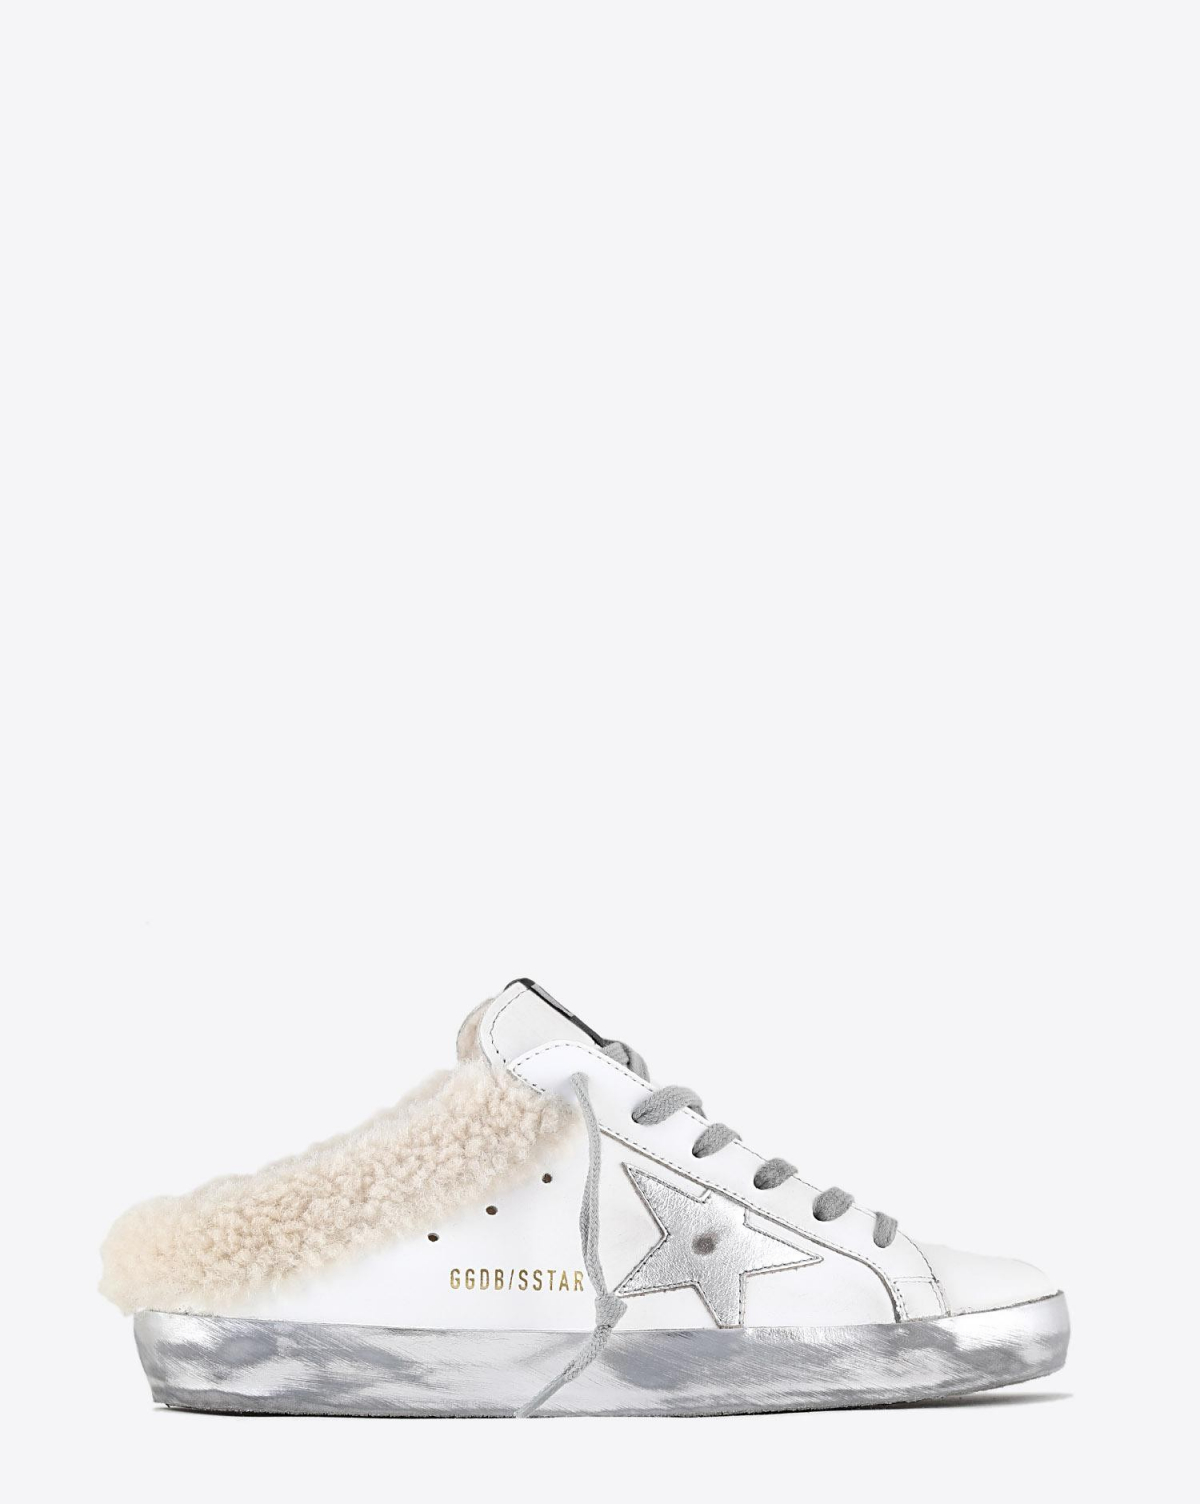 Golden Goose Woman Pré-Collection Superstar Sabot Shearling - White - Silver - Beige 10224